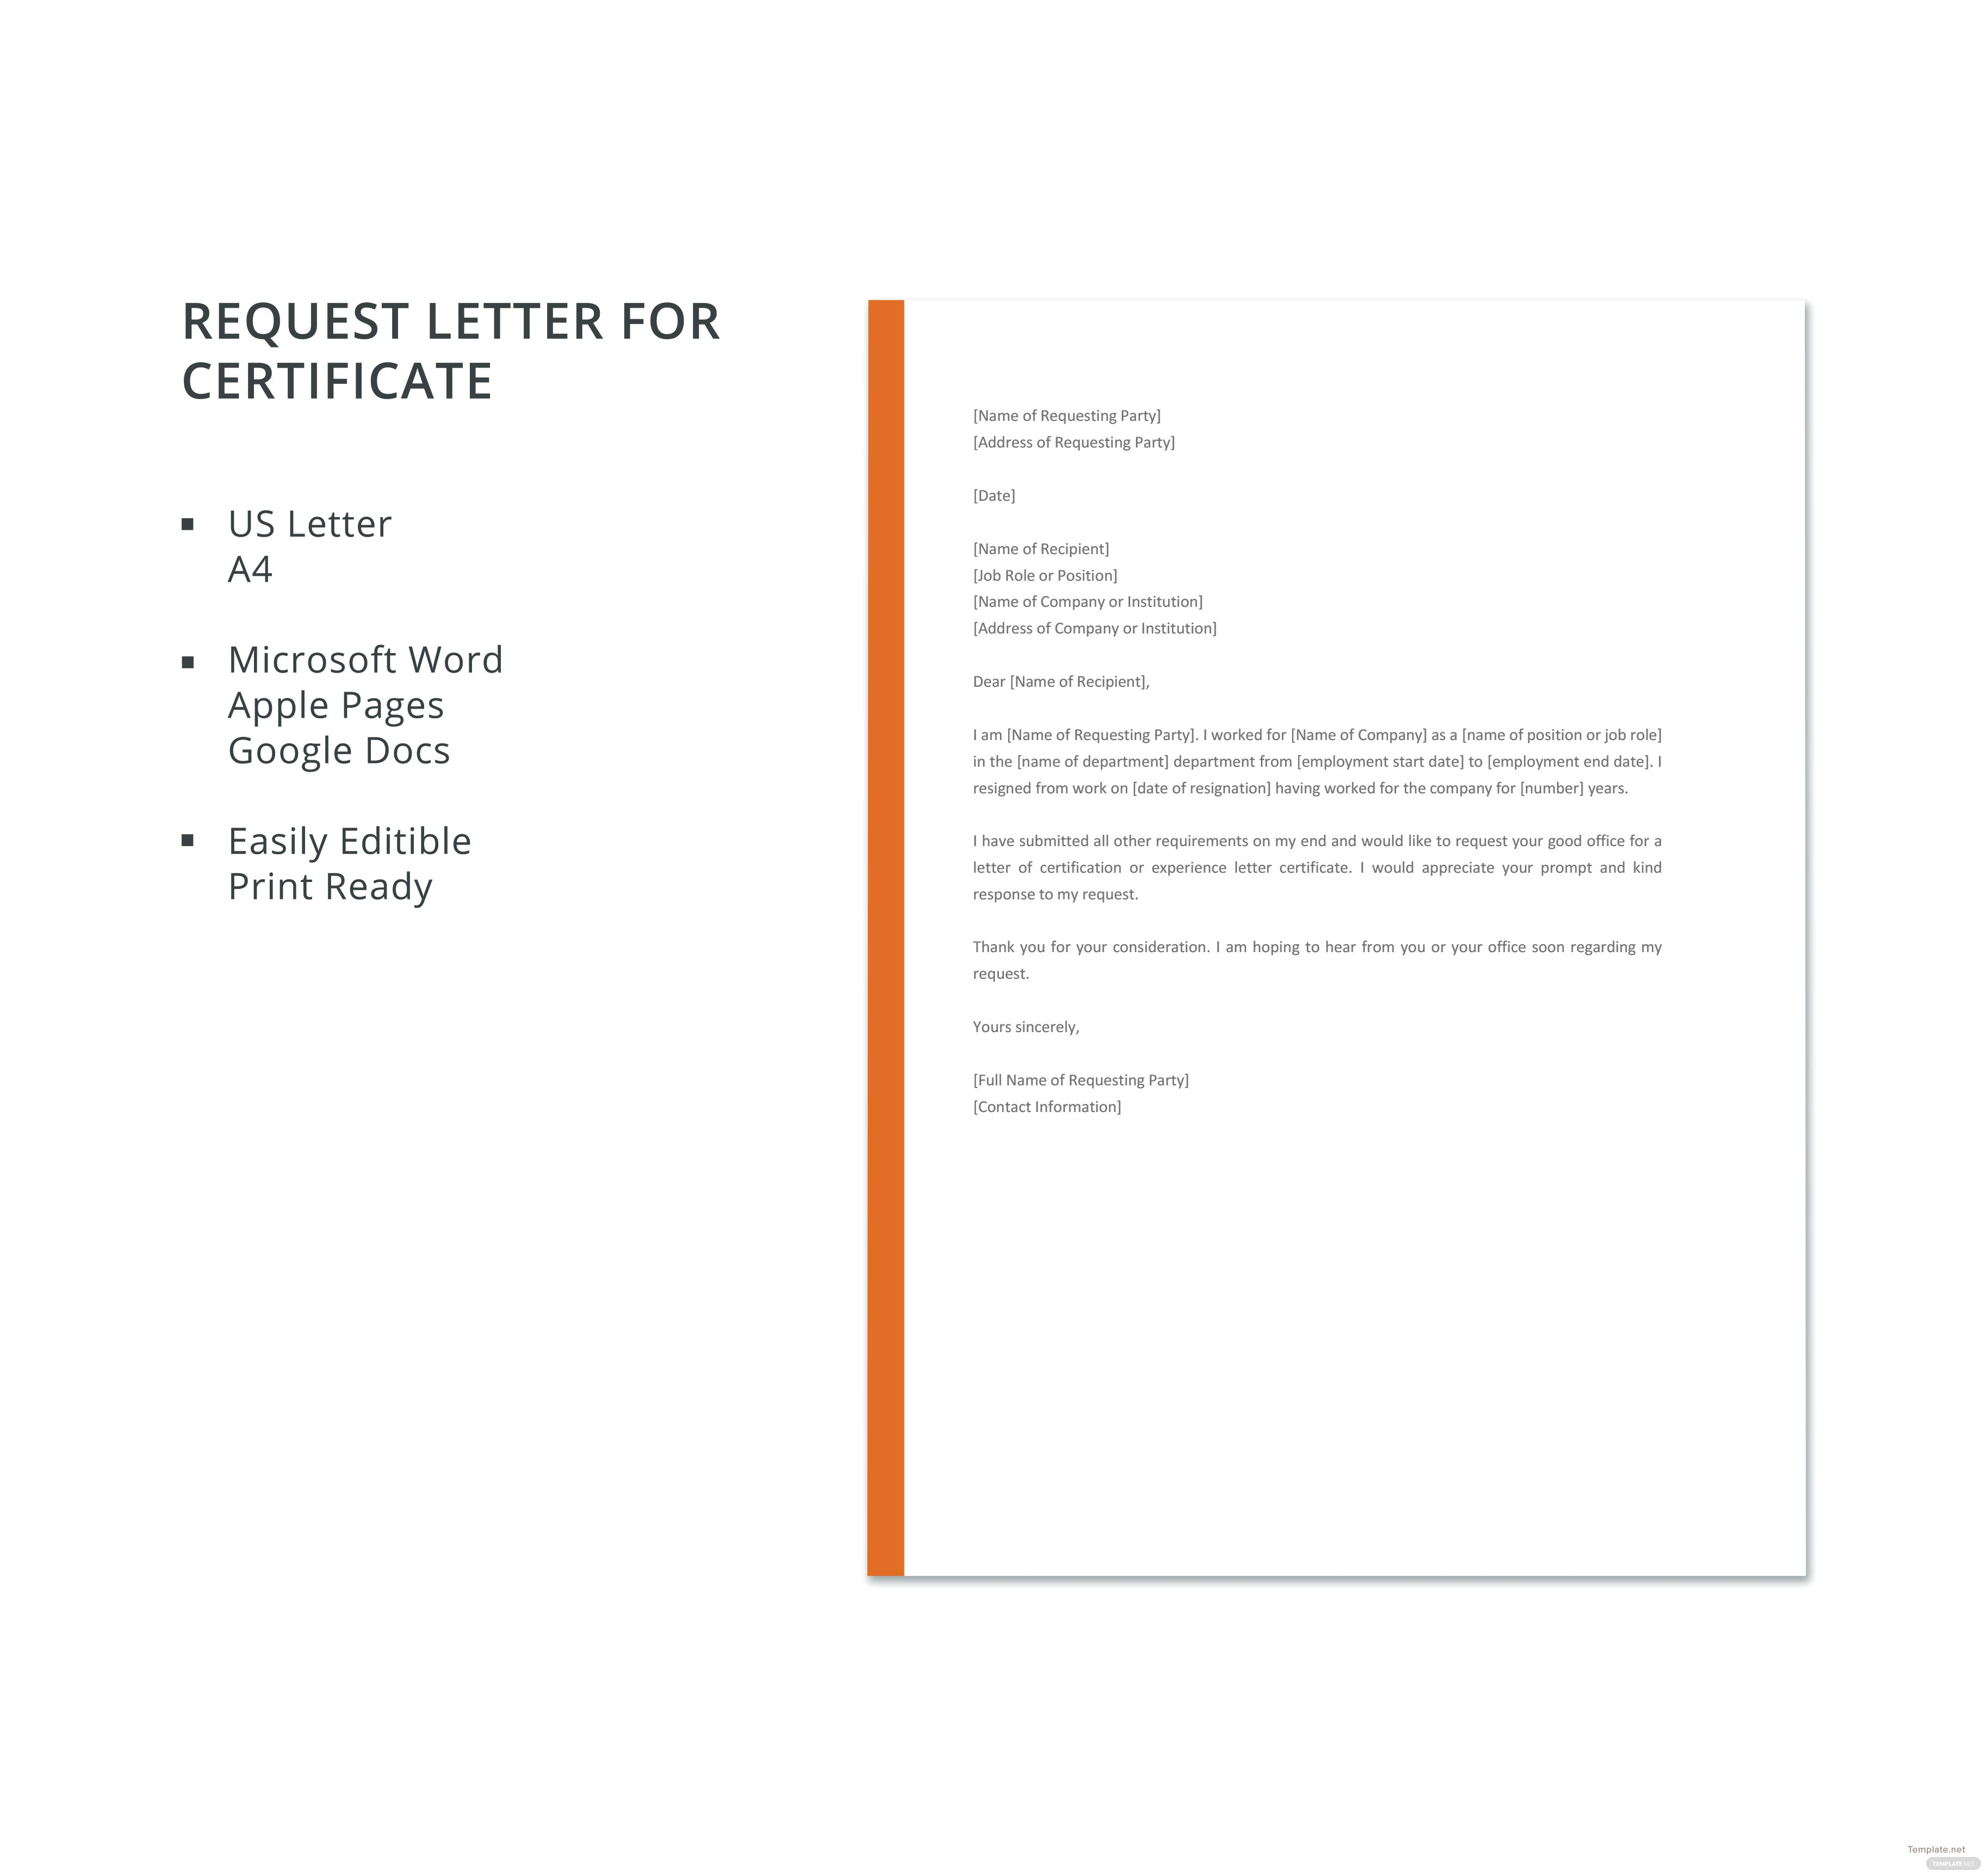 Free request letter for certificate template in microsoft word click to see full template request letter for certificate yadclub Image collections